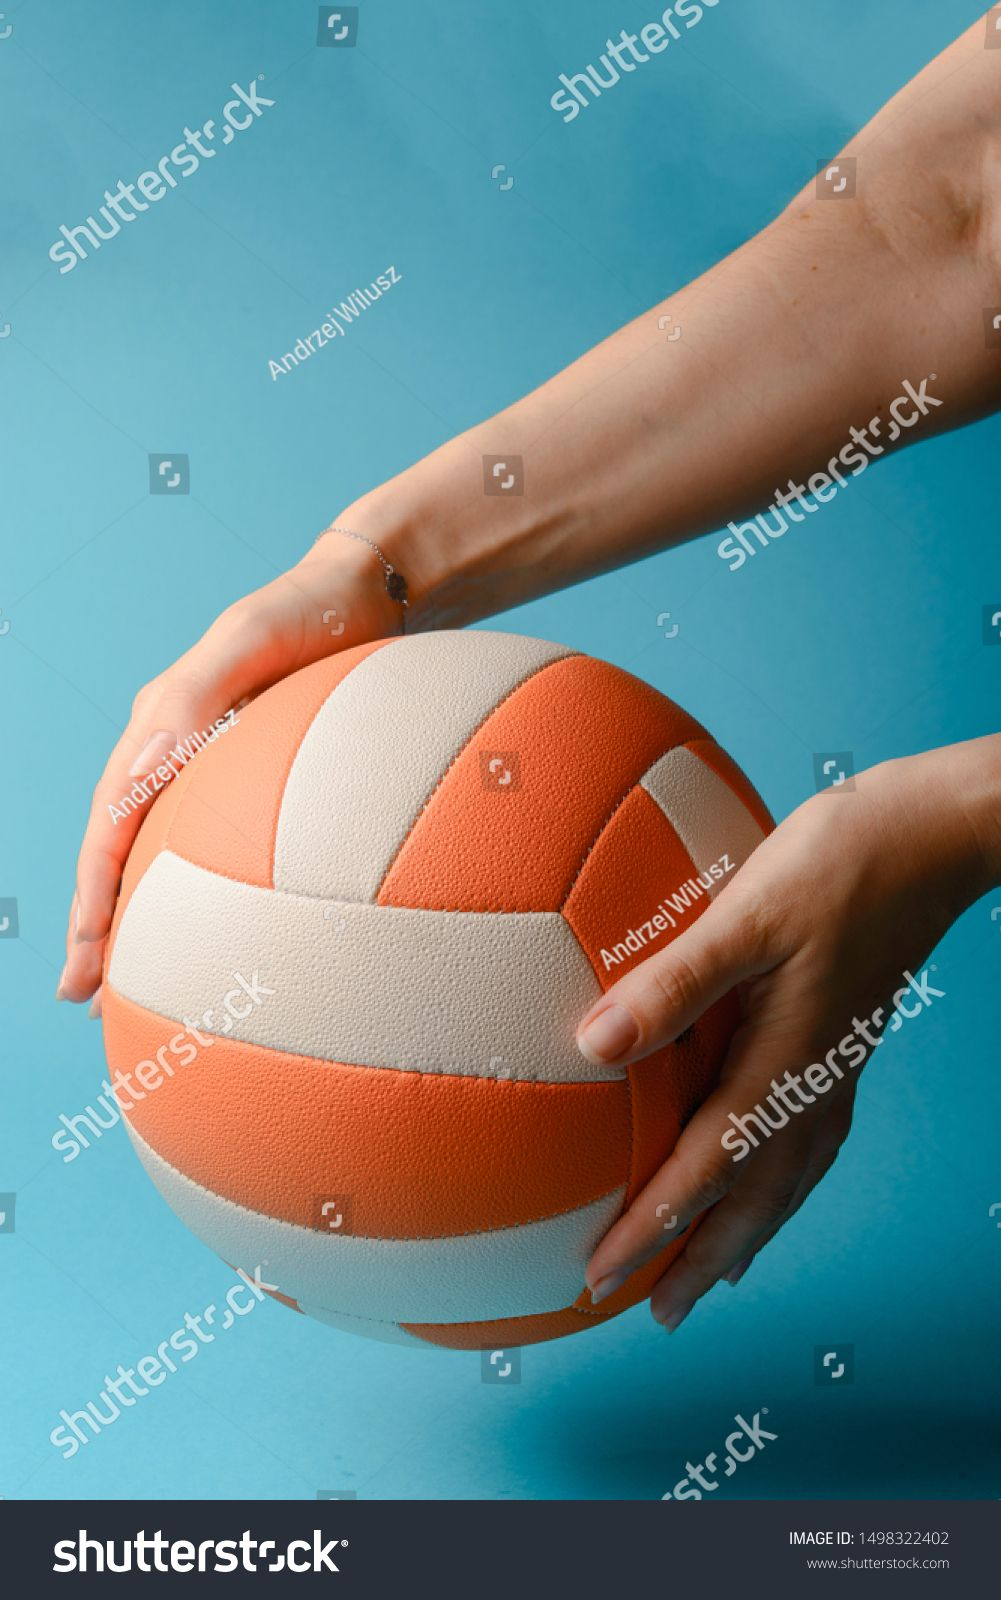 Woman Hold Volleyball In Her Hands Blue Background Ad Ad Volleyball Hold Woman Background In 2020 Volleyball Women Photo Editing